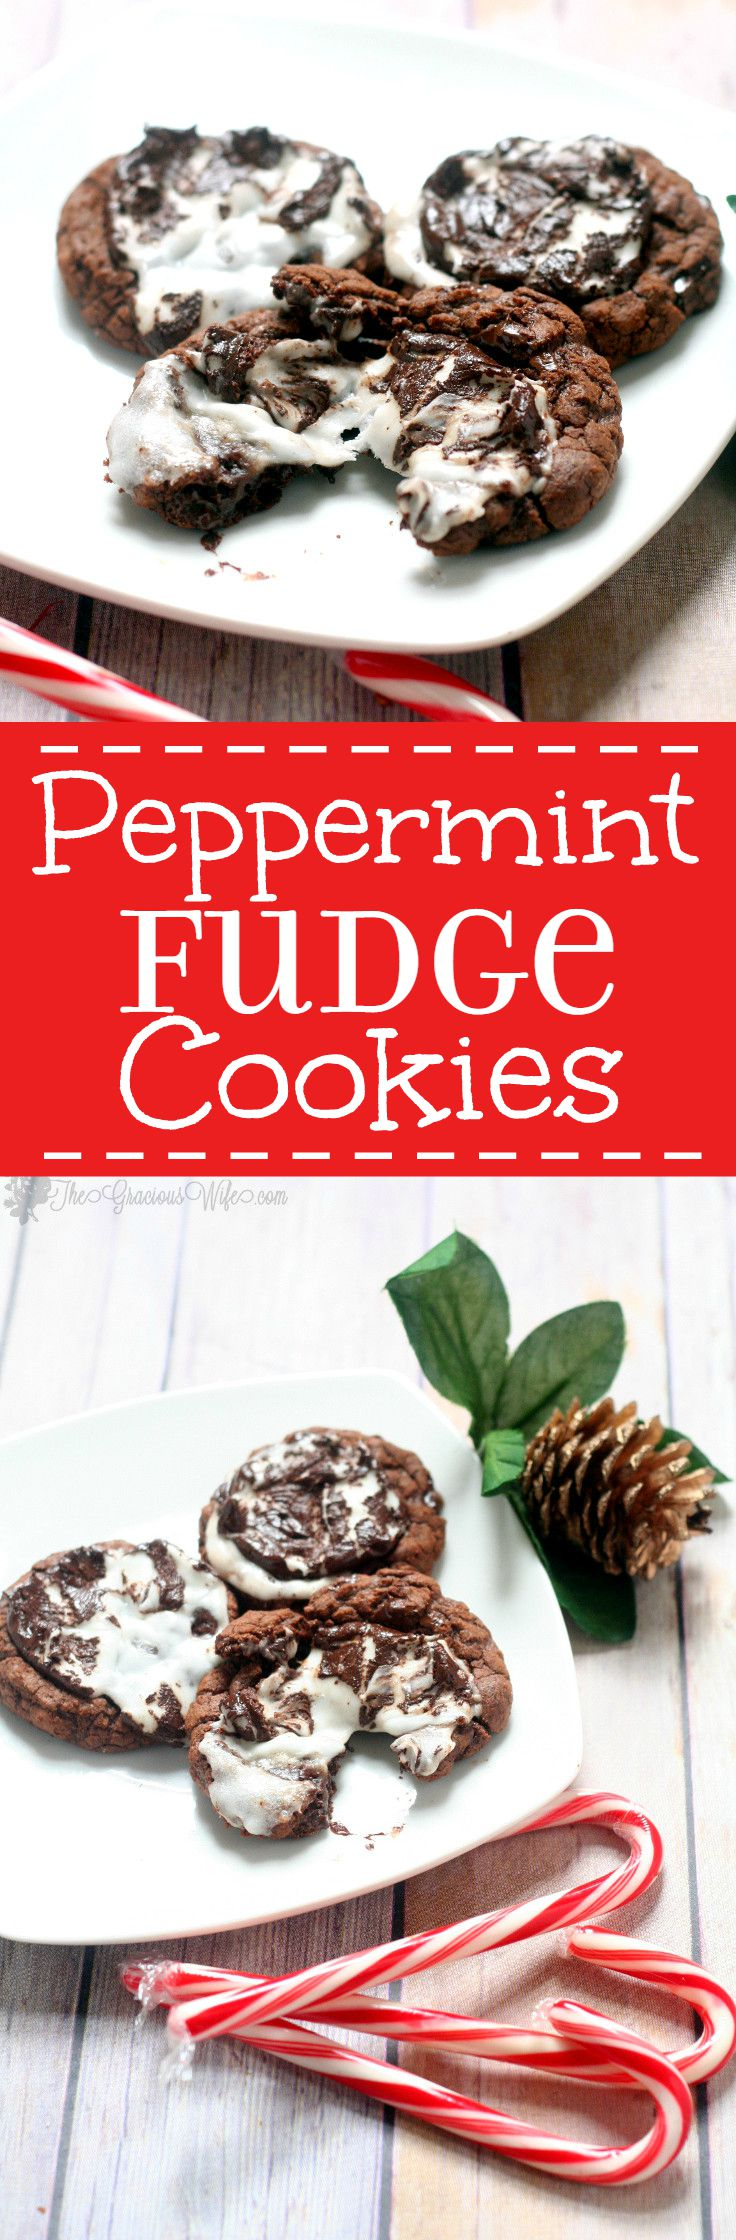 Peppermint Fudge Cookies are a chocolate fudge dream, topped with a ...